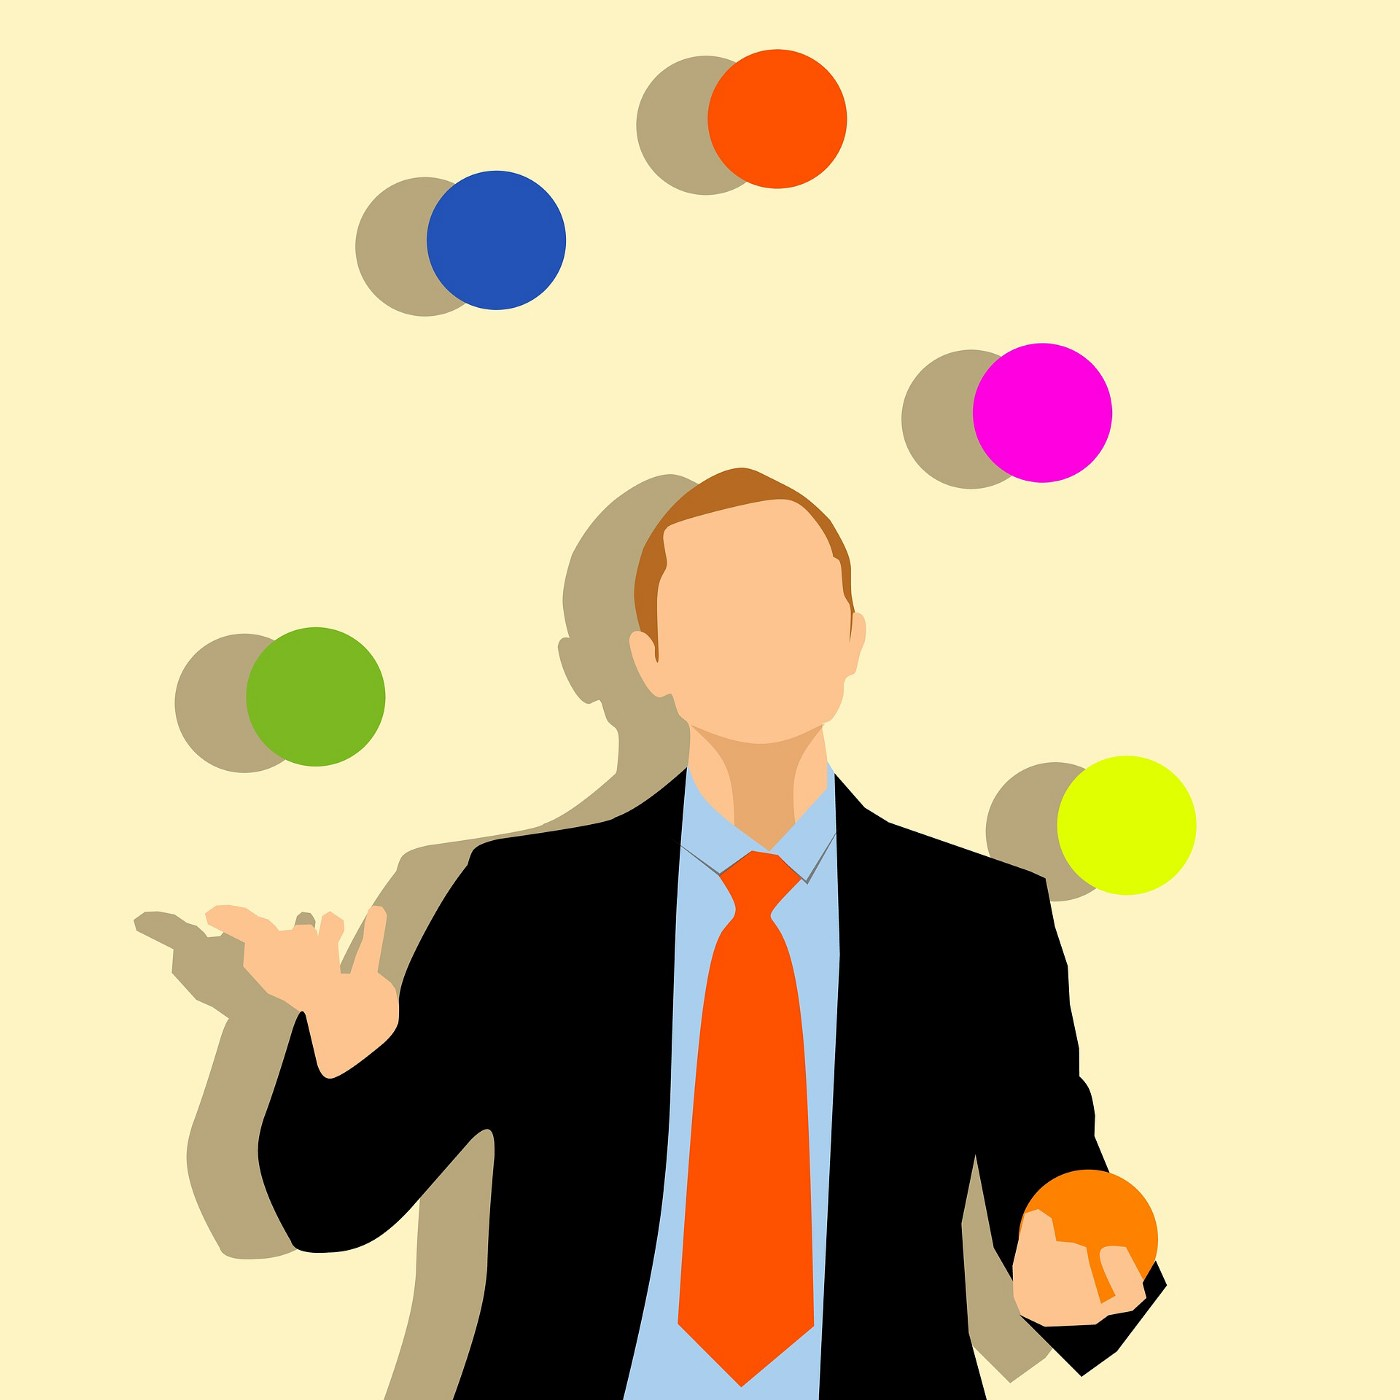 A drawing of a faceless man in a suit juggling four colourful balls in front of a yellow background.